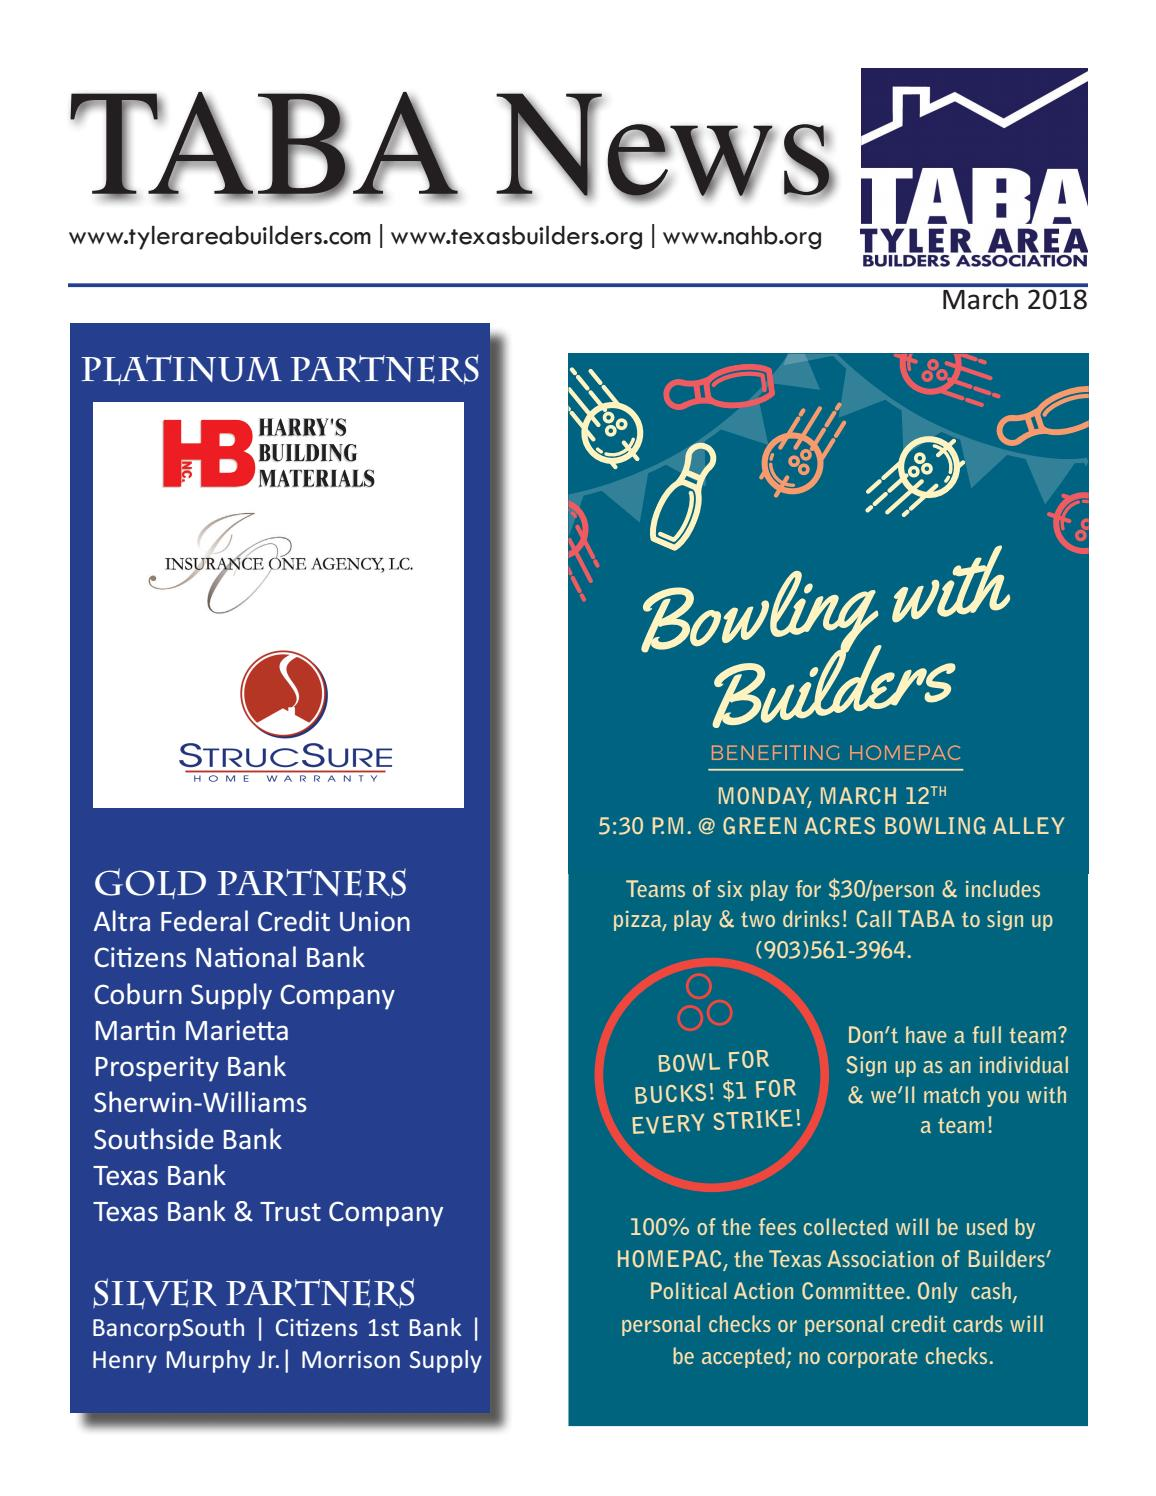 Newsletter March 18 By Tyler Area Builders Association Issuu